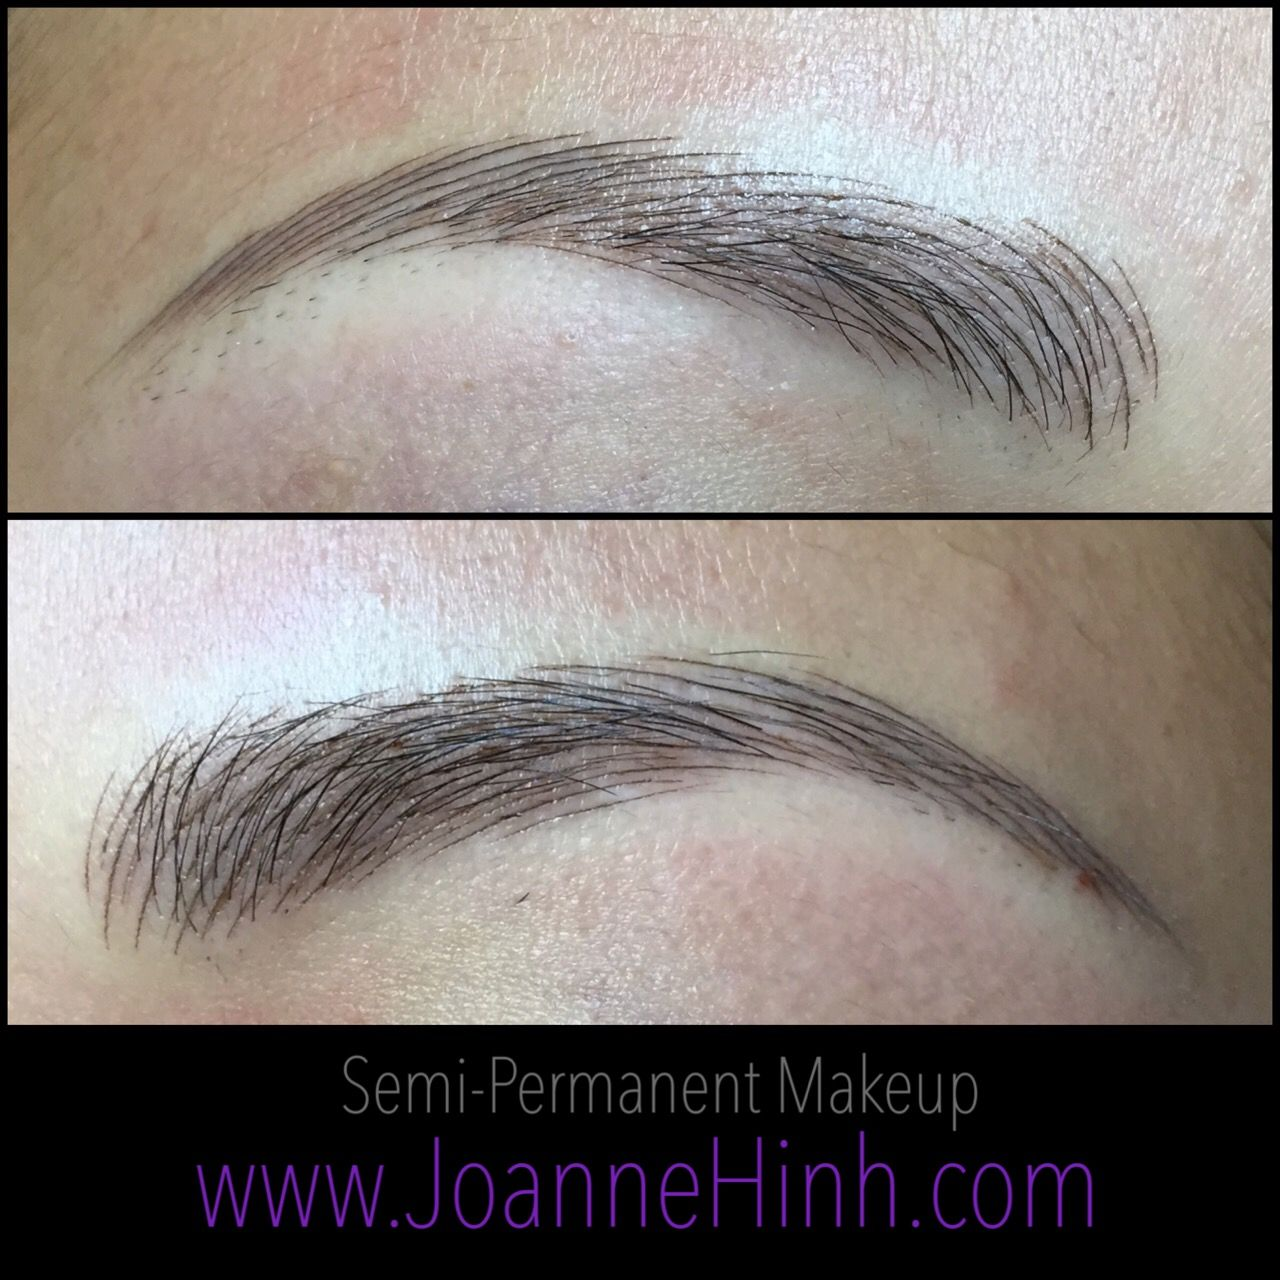 Hairstroke Eyebrow Embroidery By Joanne Hinh. Brow Embroidery. 3D Brow Tattoo. Feathering ...